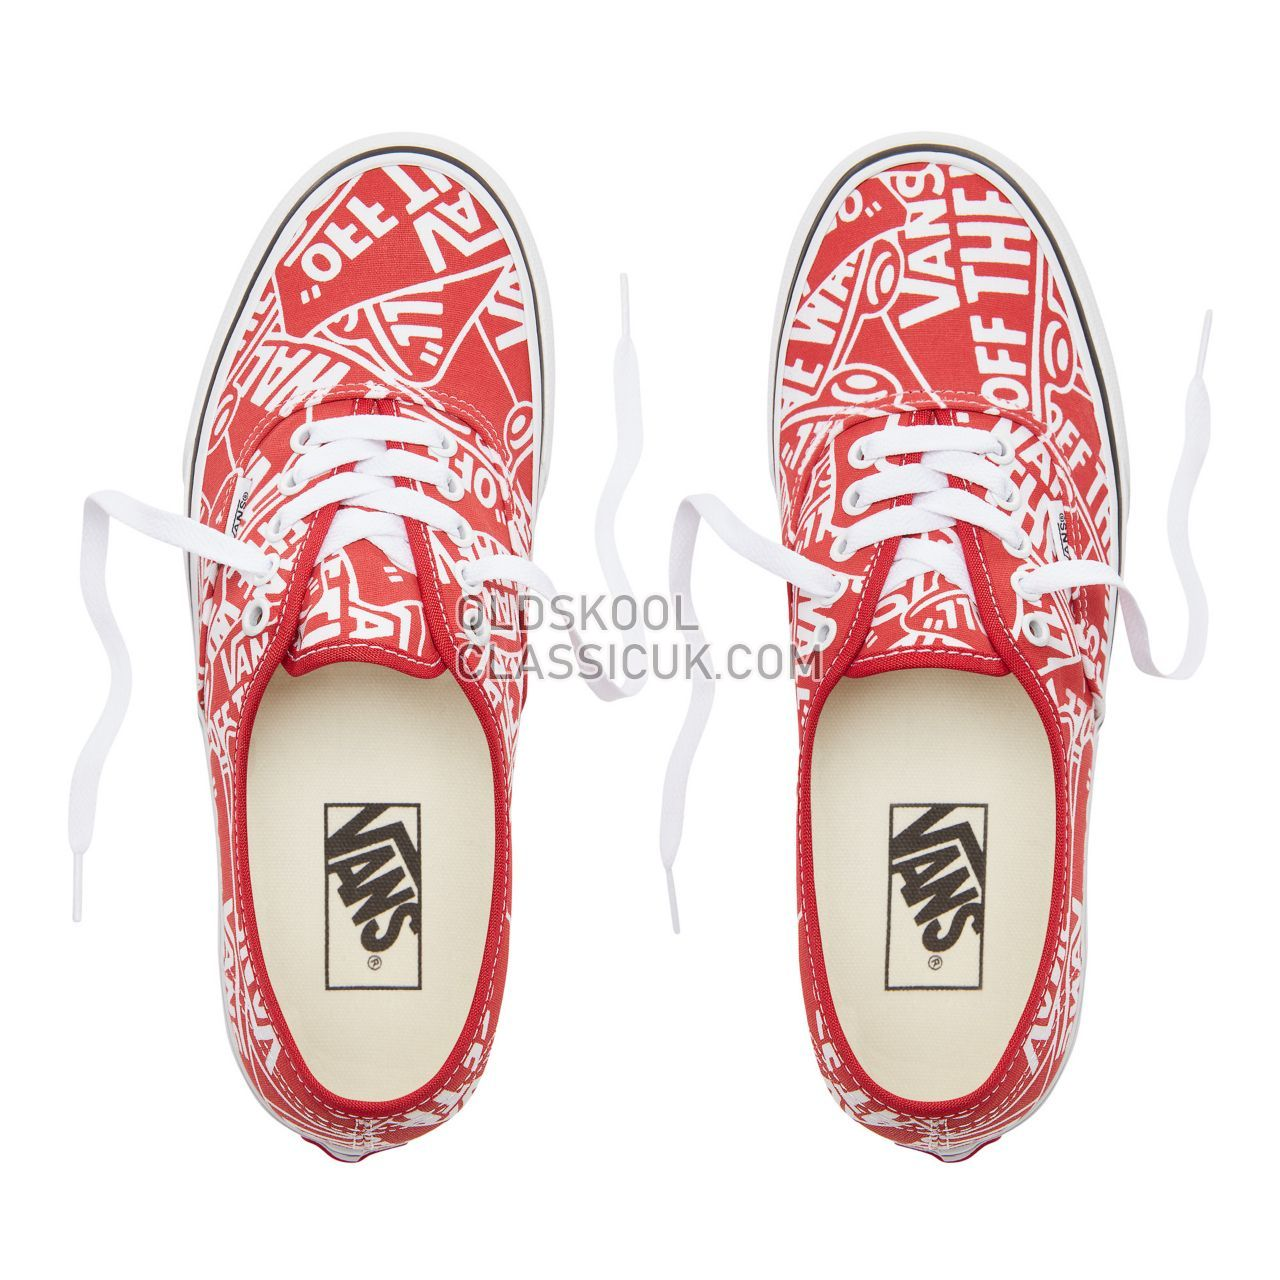 Vans Otw Repeat Authentic Sneakers Mens (Otw Repeat) Red/True White VN0A38EMUKL Shoes